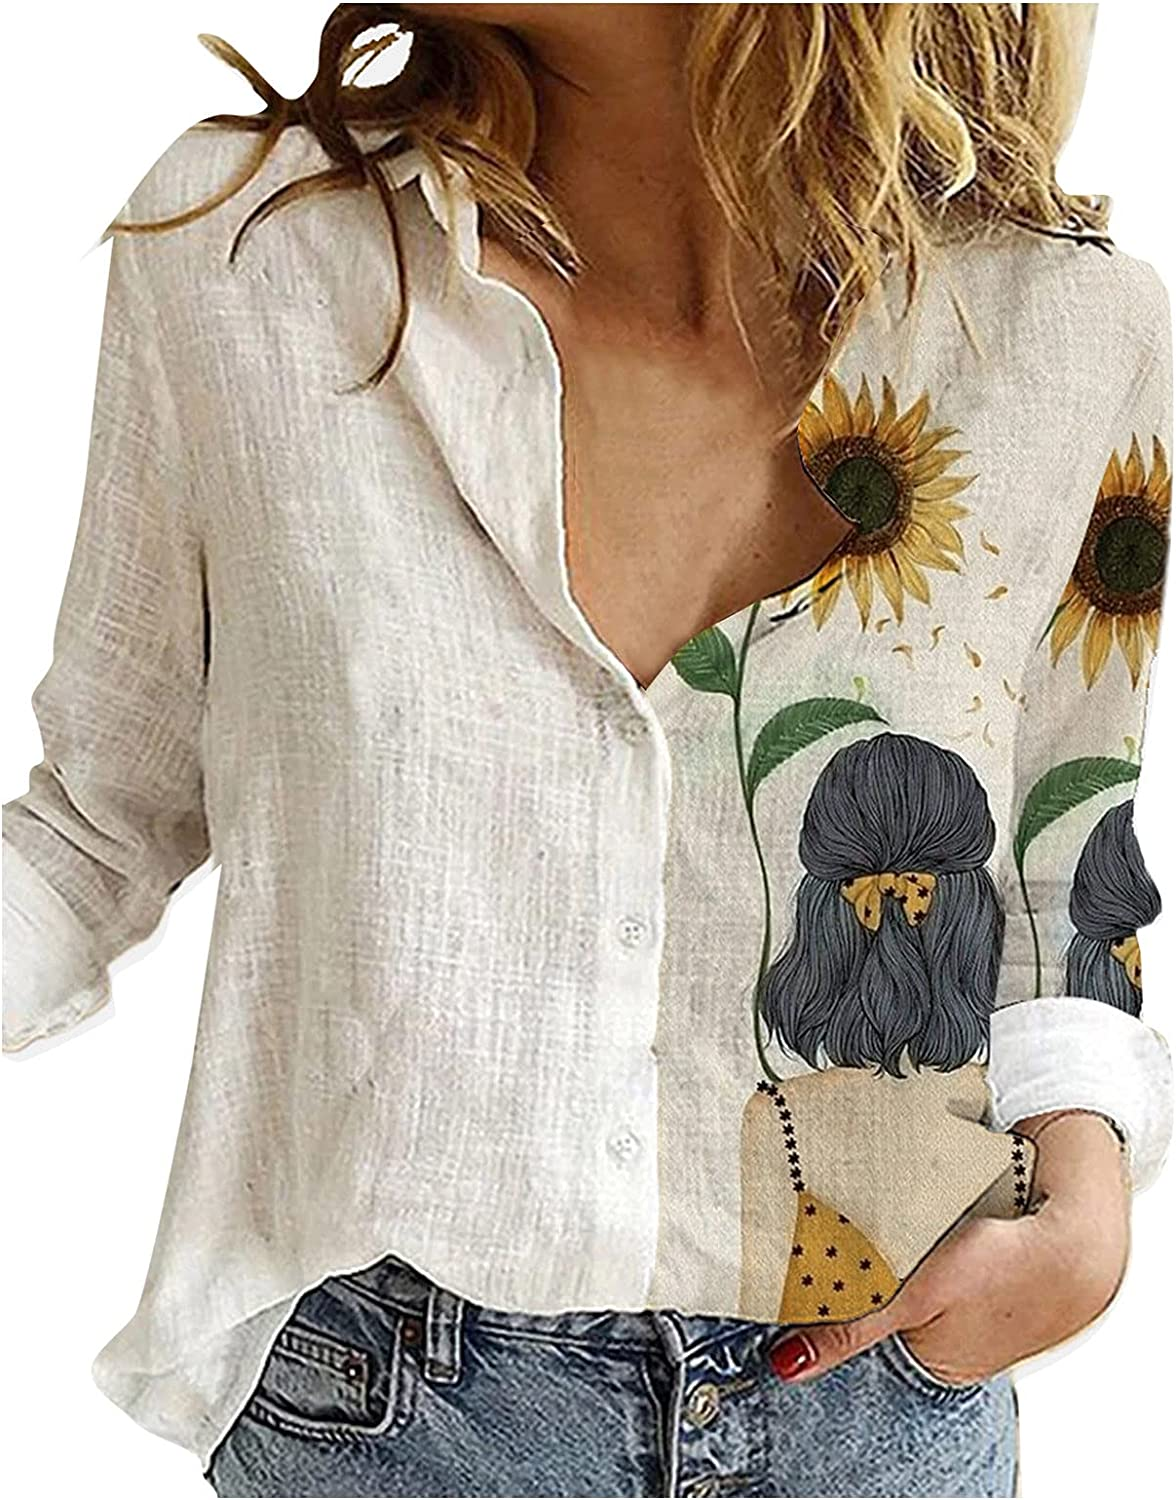 sold out Eoailr Buttons Shirts for Reservation Women Casual Neck V Half Tu Tops Print